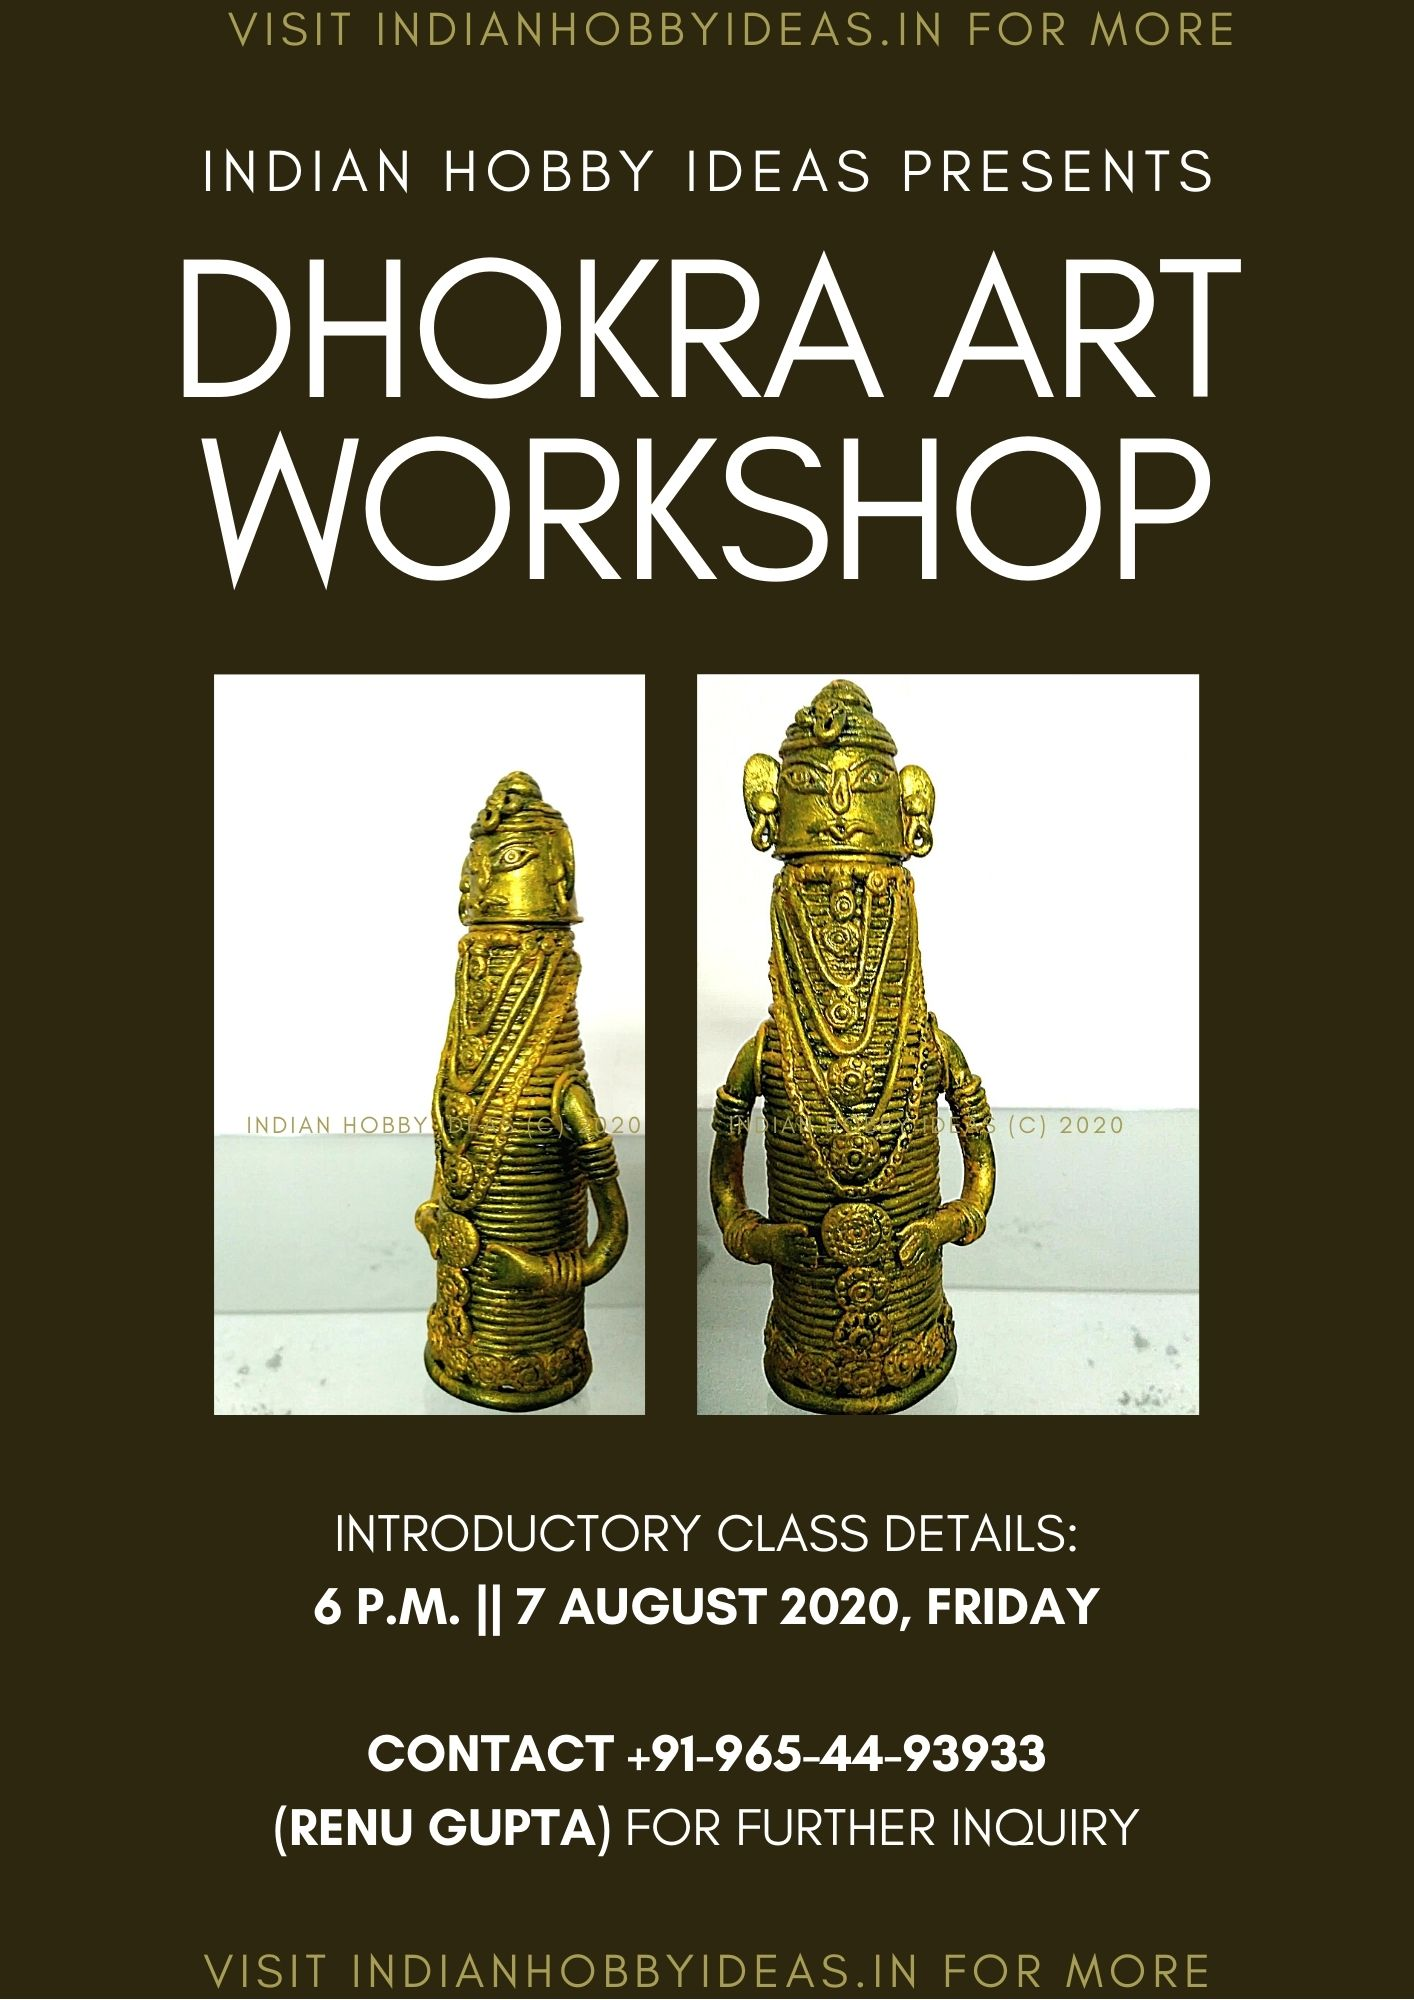 dhokra art workshop poster indian hobby ideas trust